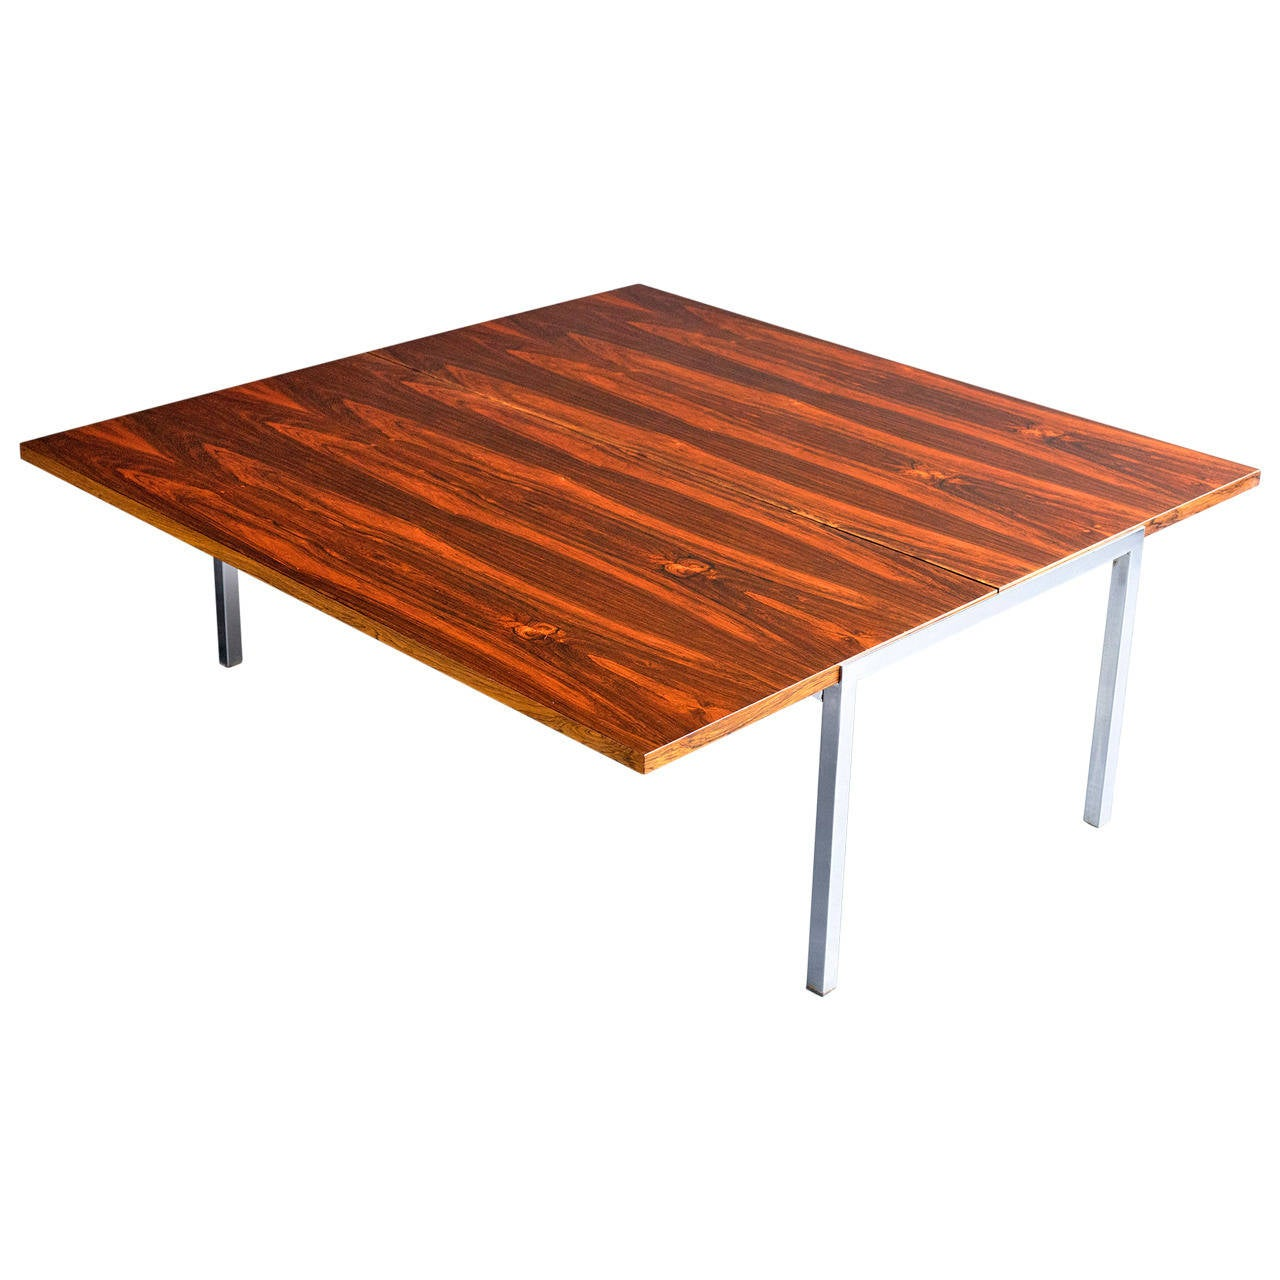 Convertible coffee table by wilhelm renz at 1stdibs - Transformable coffee table ...